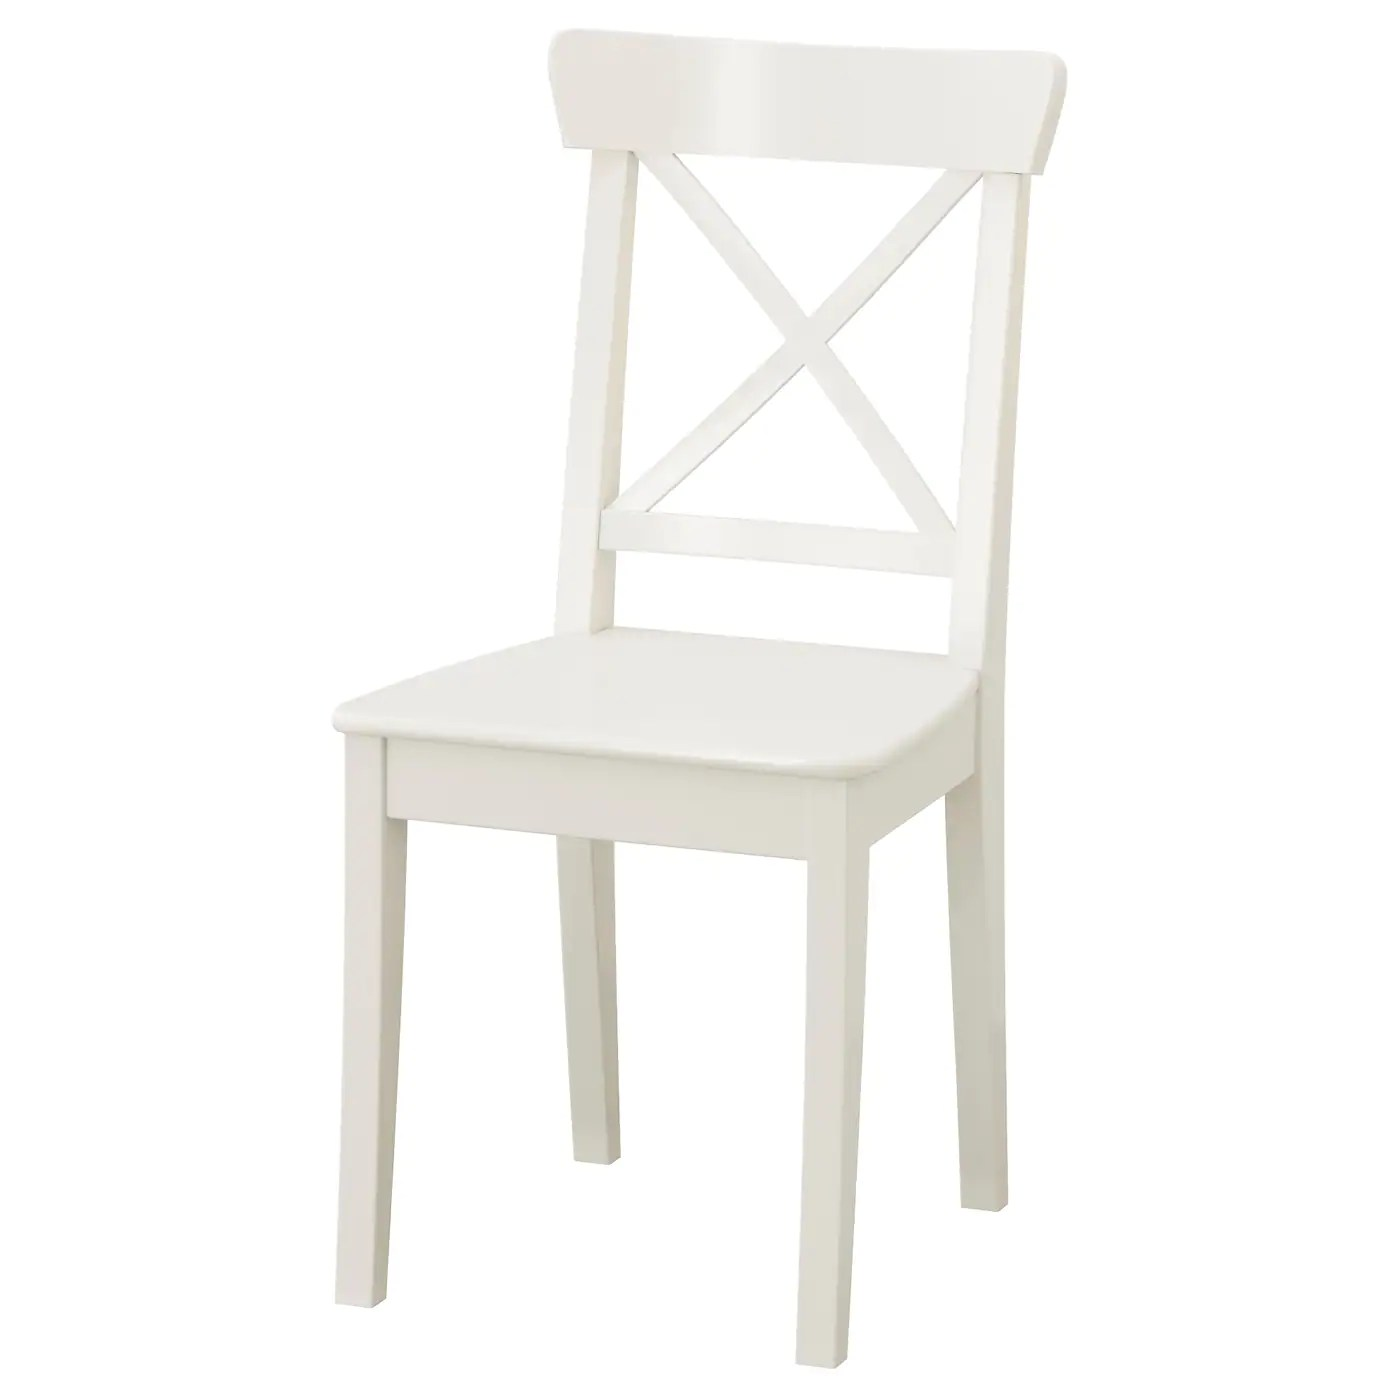 White Wood Chair Ingolf Chair White Ikea